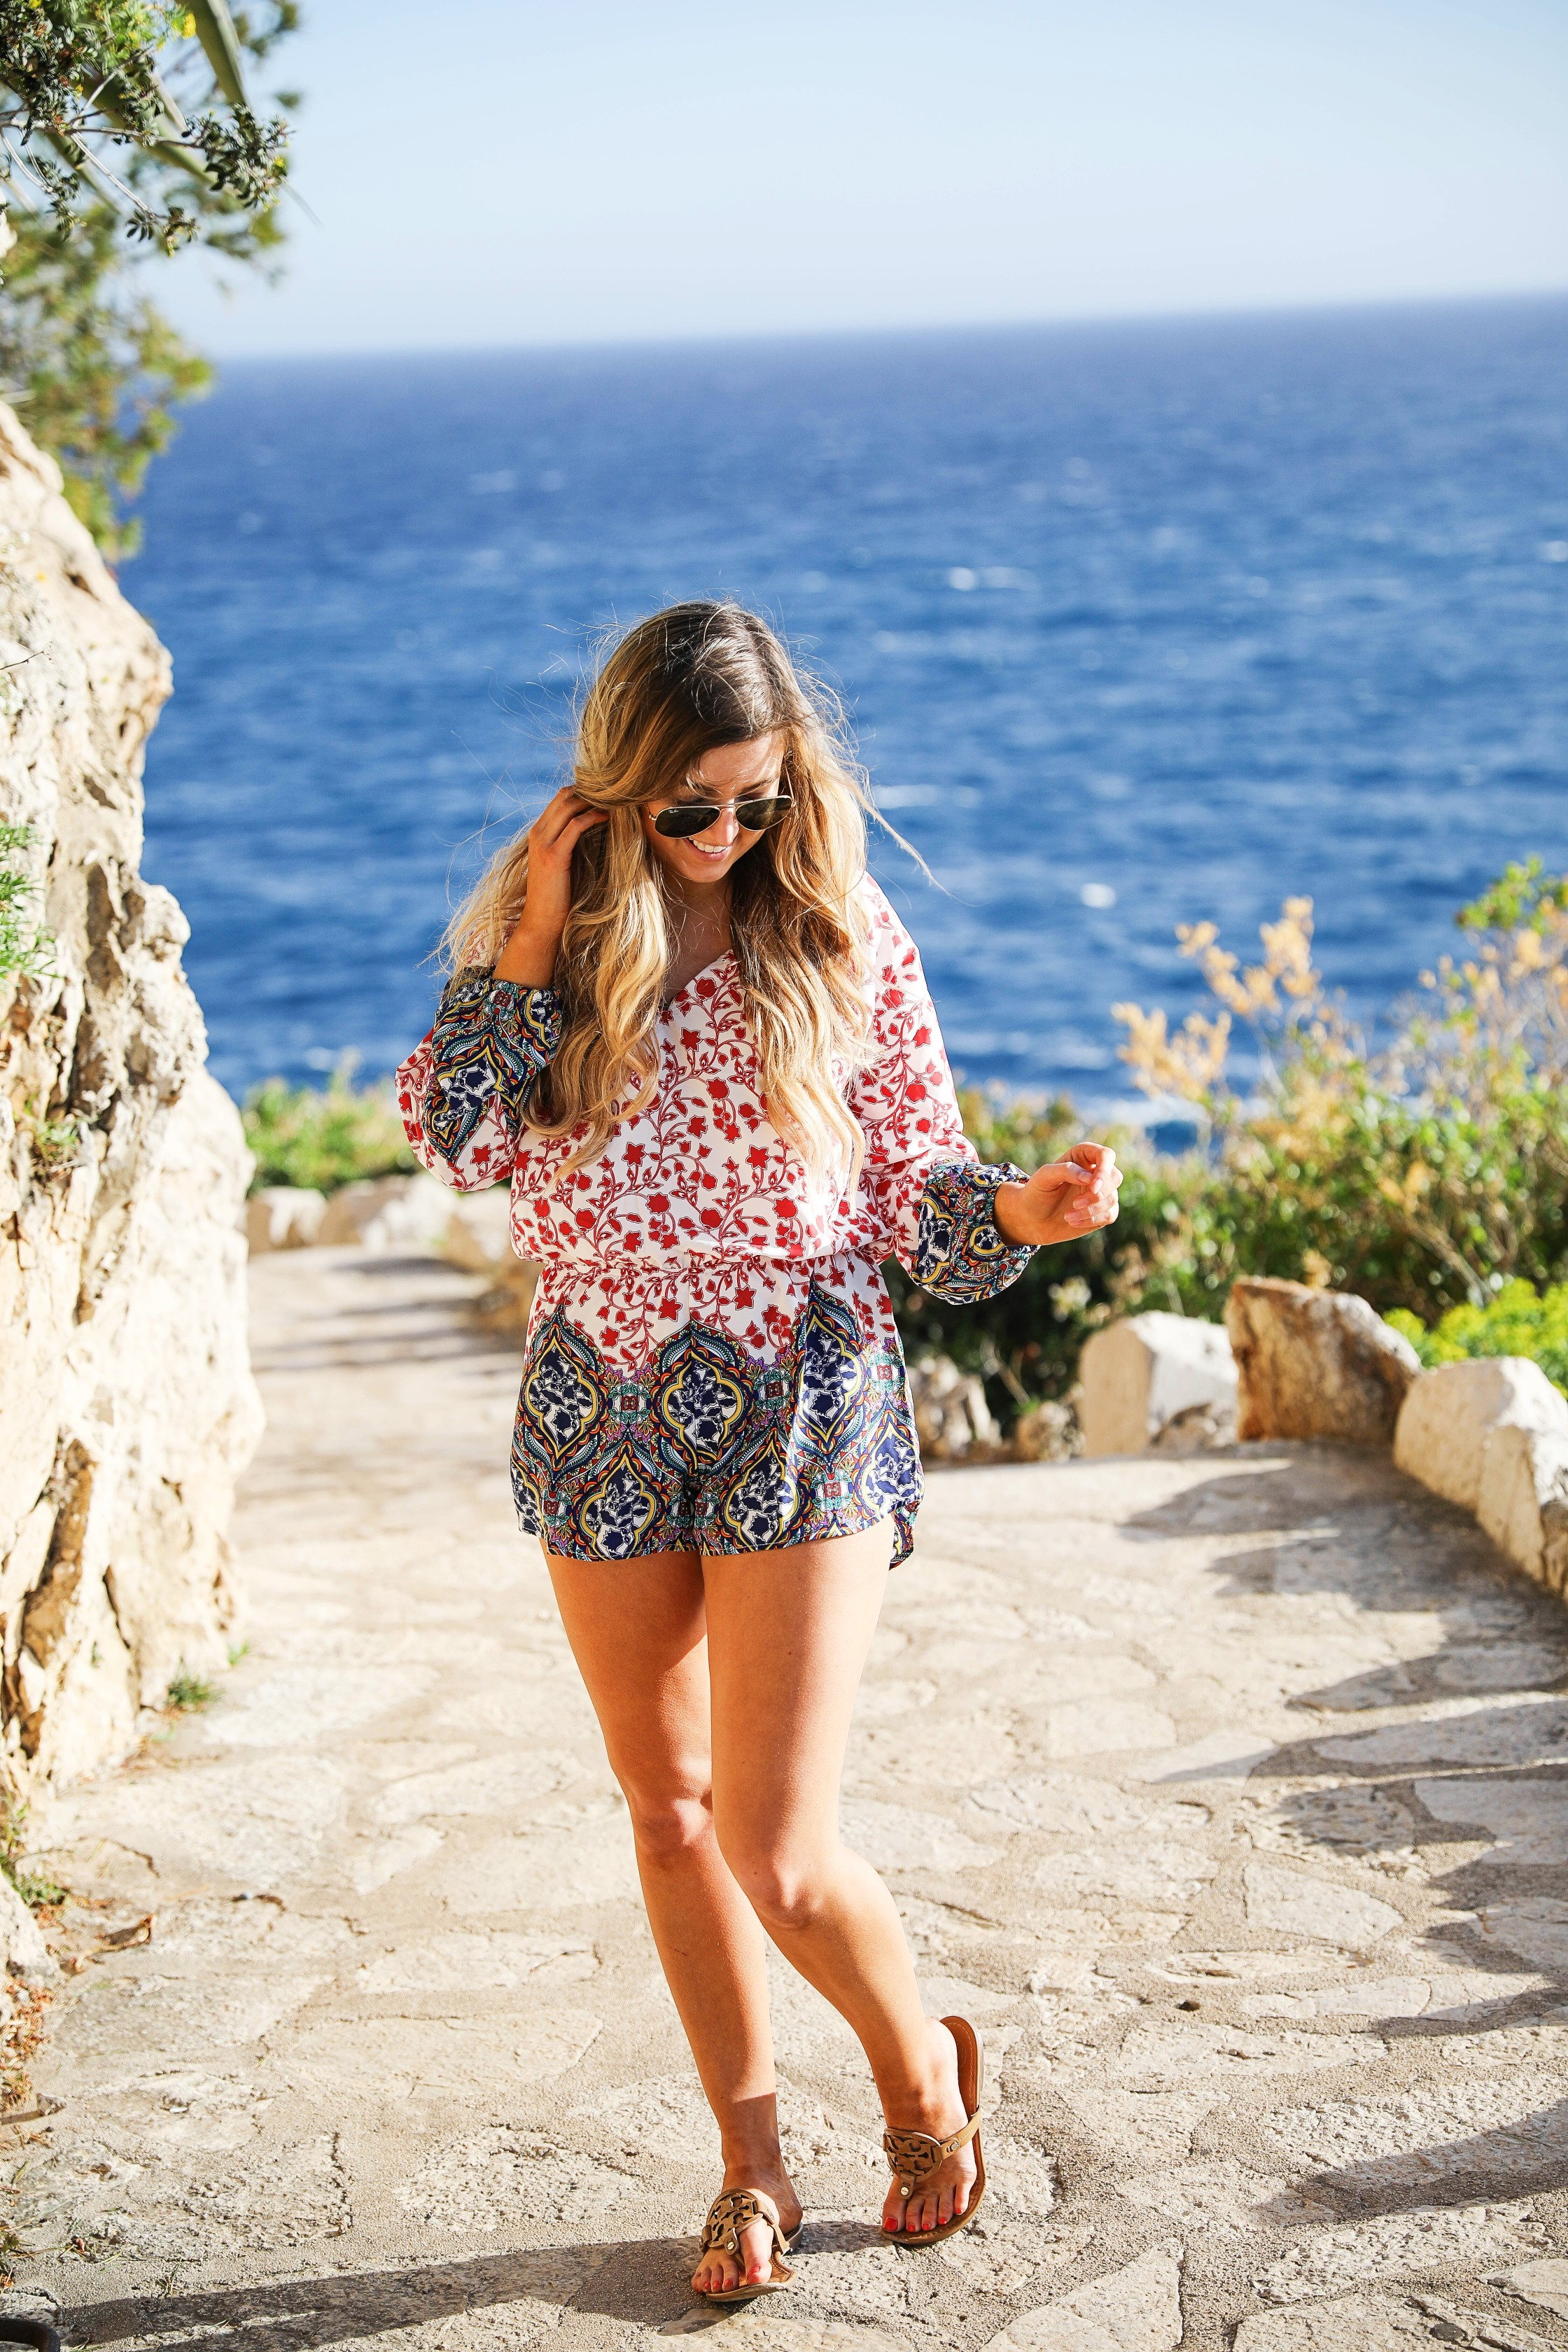 Romper by the ocean in Nice, France. The perfect outfit for a beach day! By Lauren Lindmark on dailydoseofcharm.com daily dose of charm fashion blog